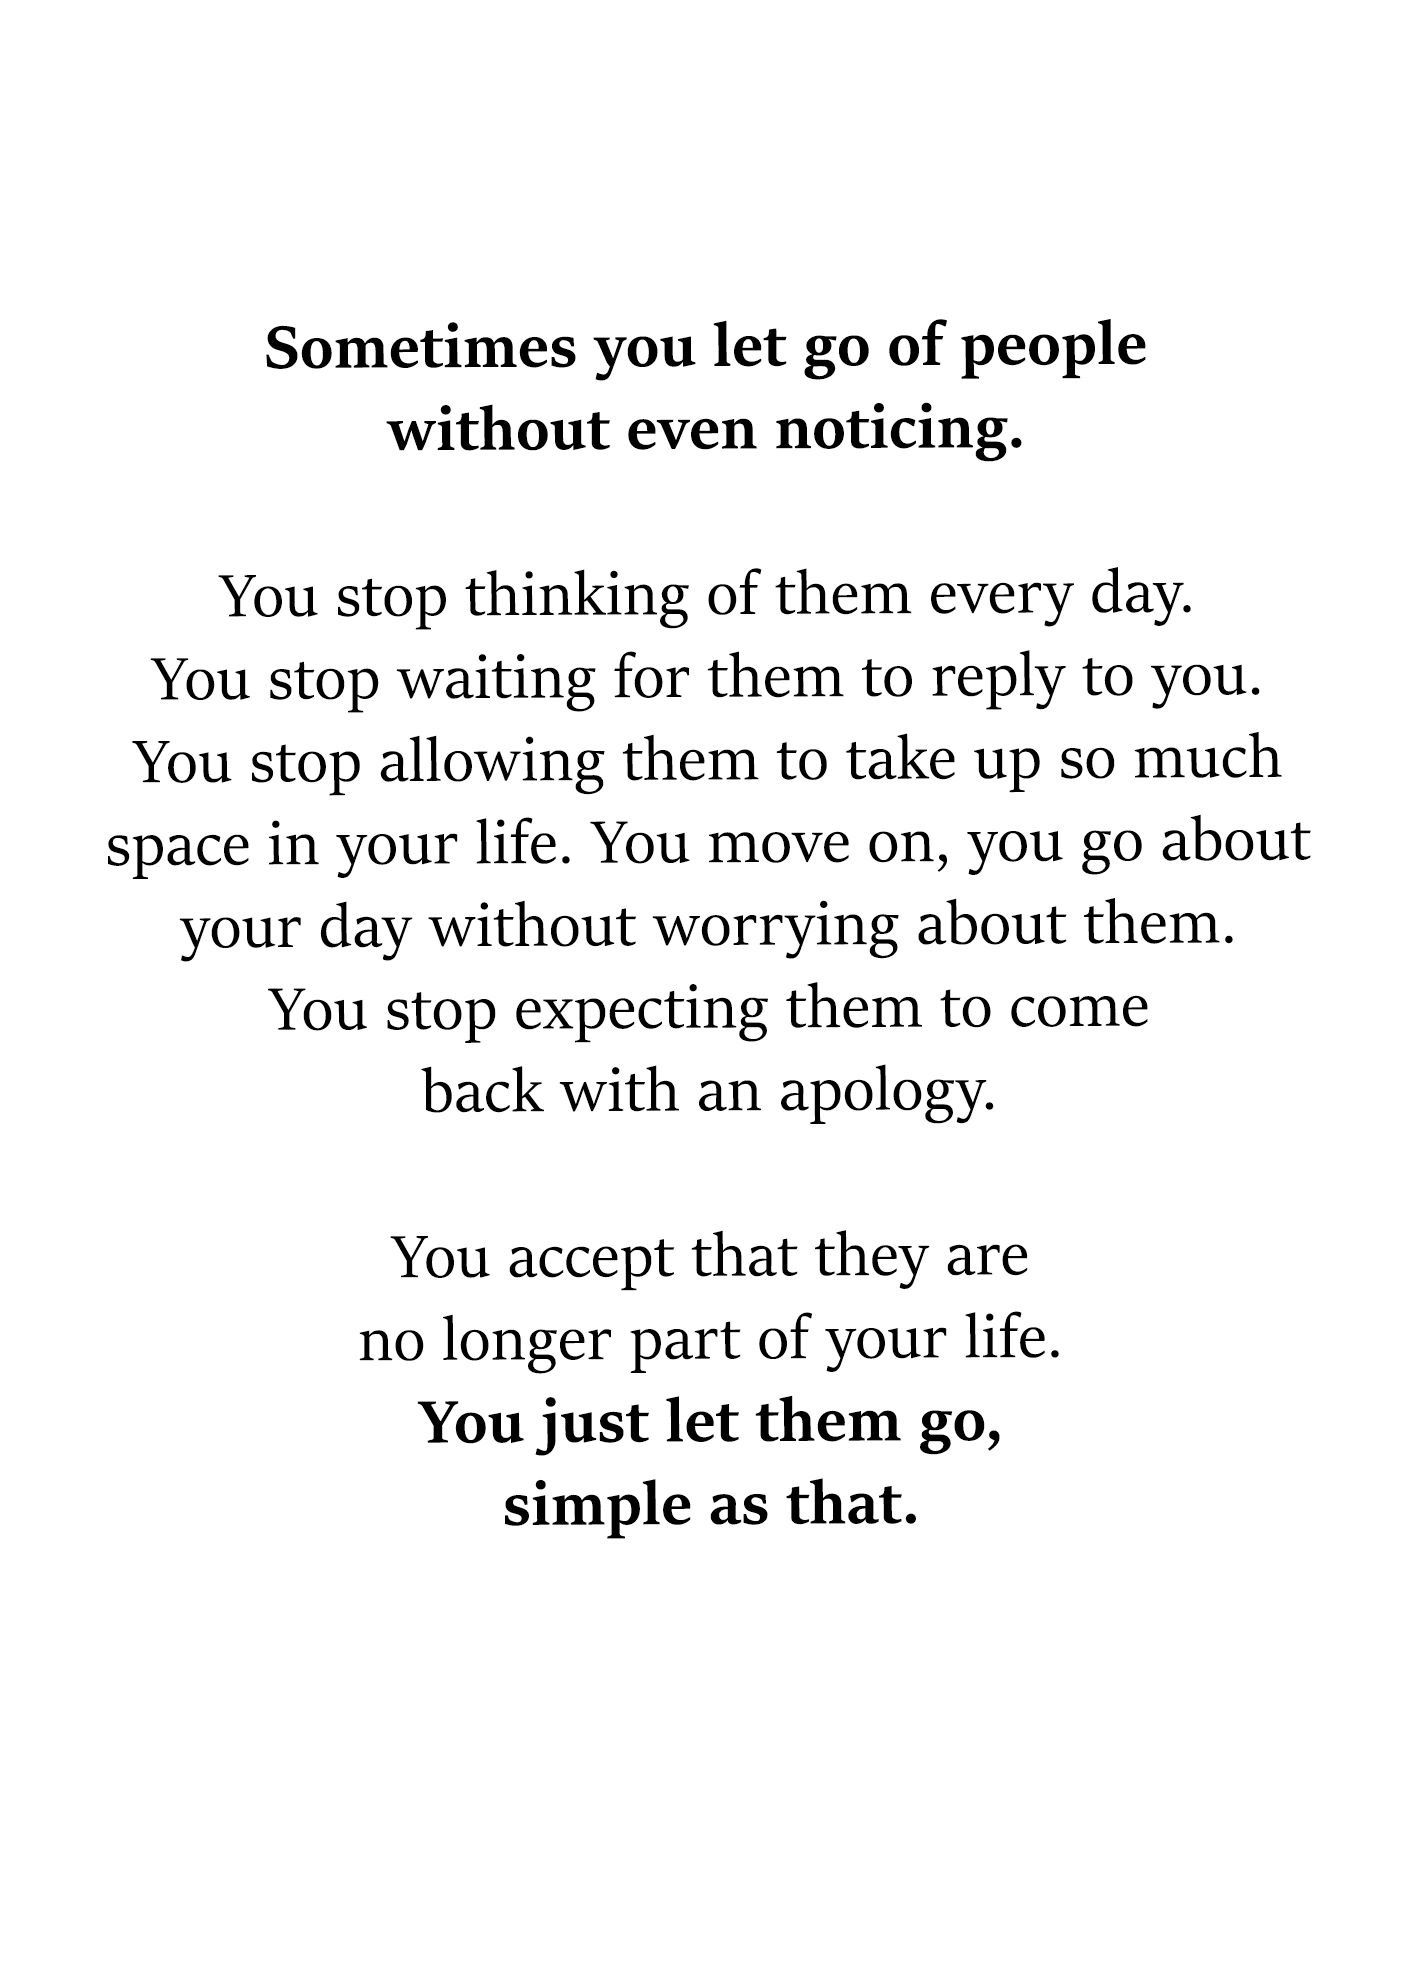 Sometimes You Let People Go Without Noticing Go For It Quotes Quotes About Friendship Ending Letting People Go